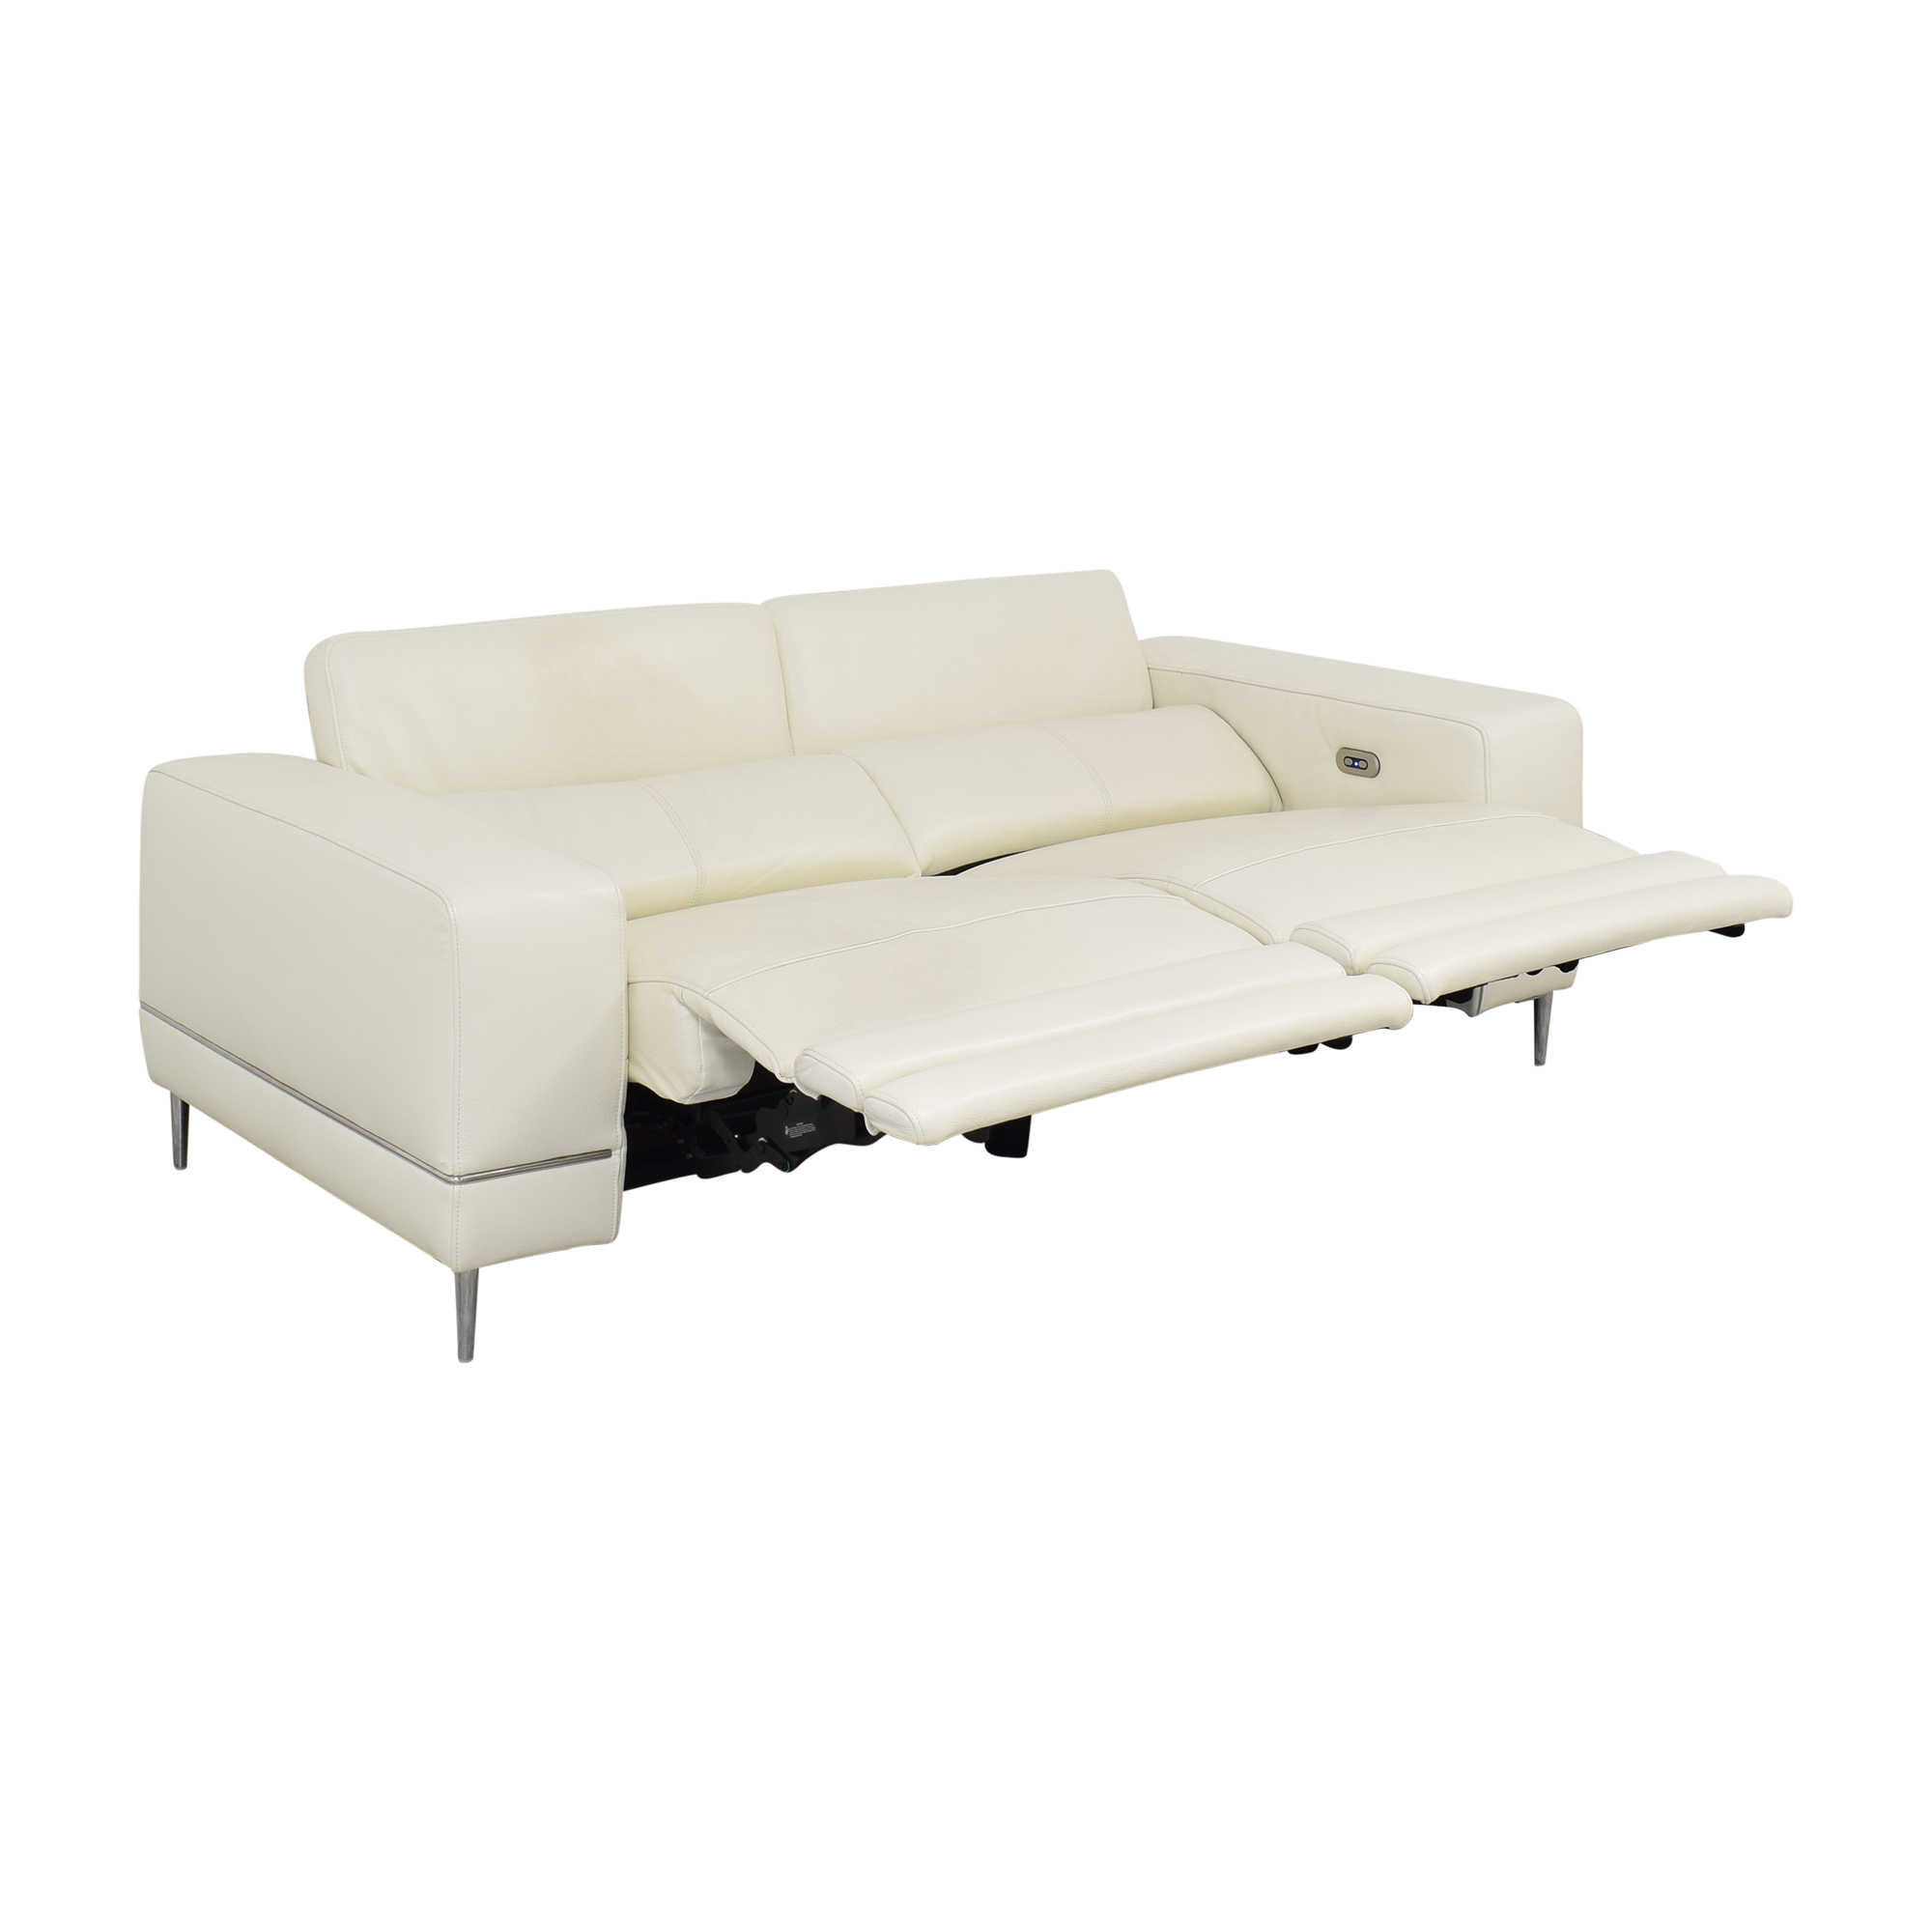 Modani Modani Bergamo Motion Sofa White nyc